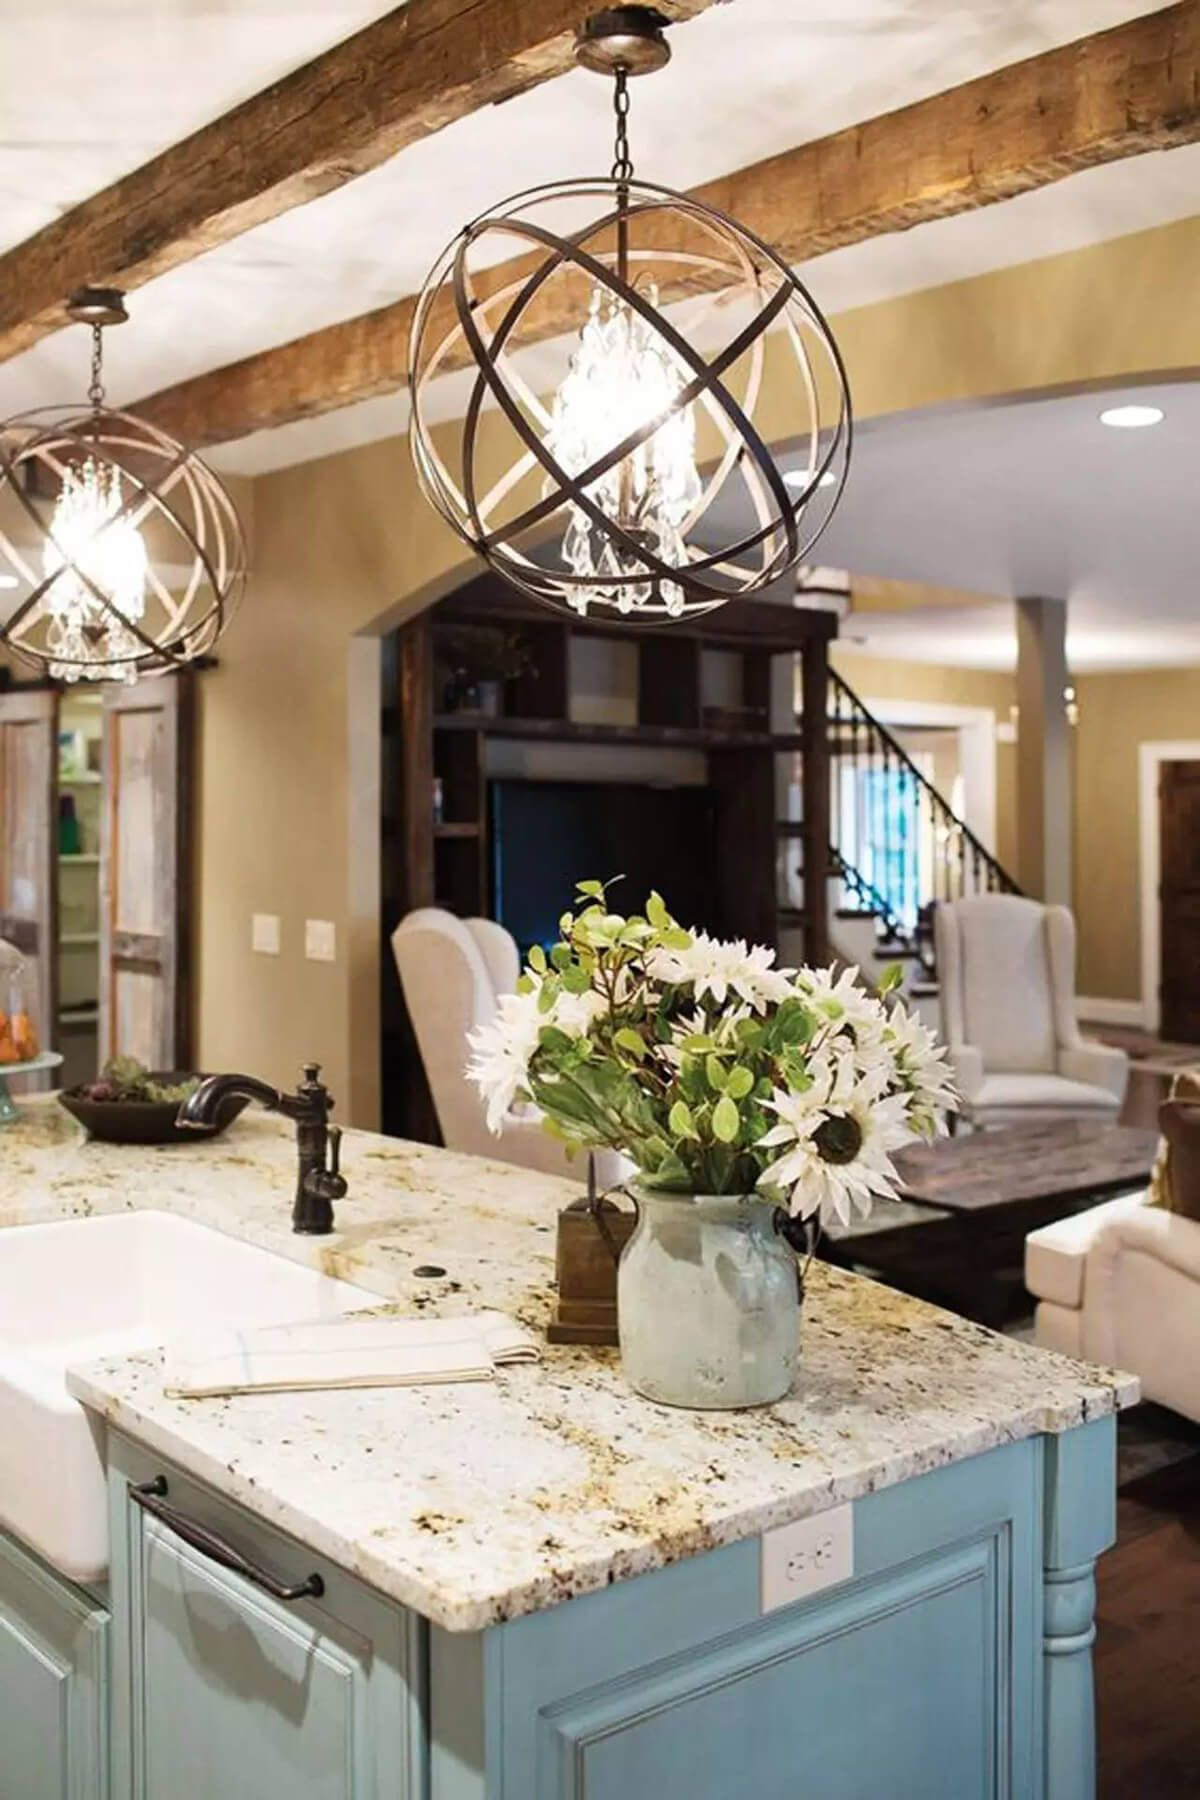 farmhouse lighting ideas to brighten up your space in a charming